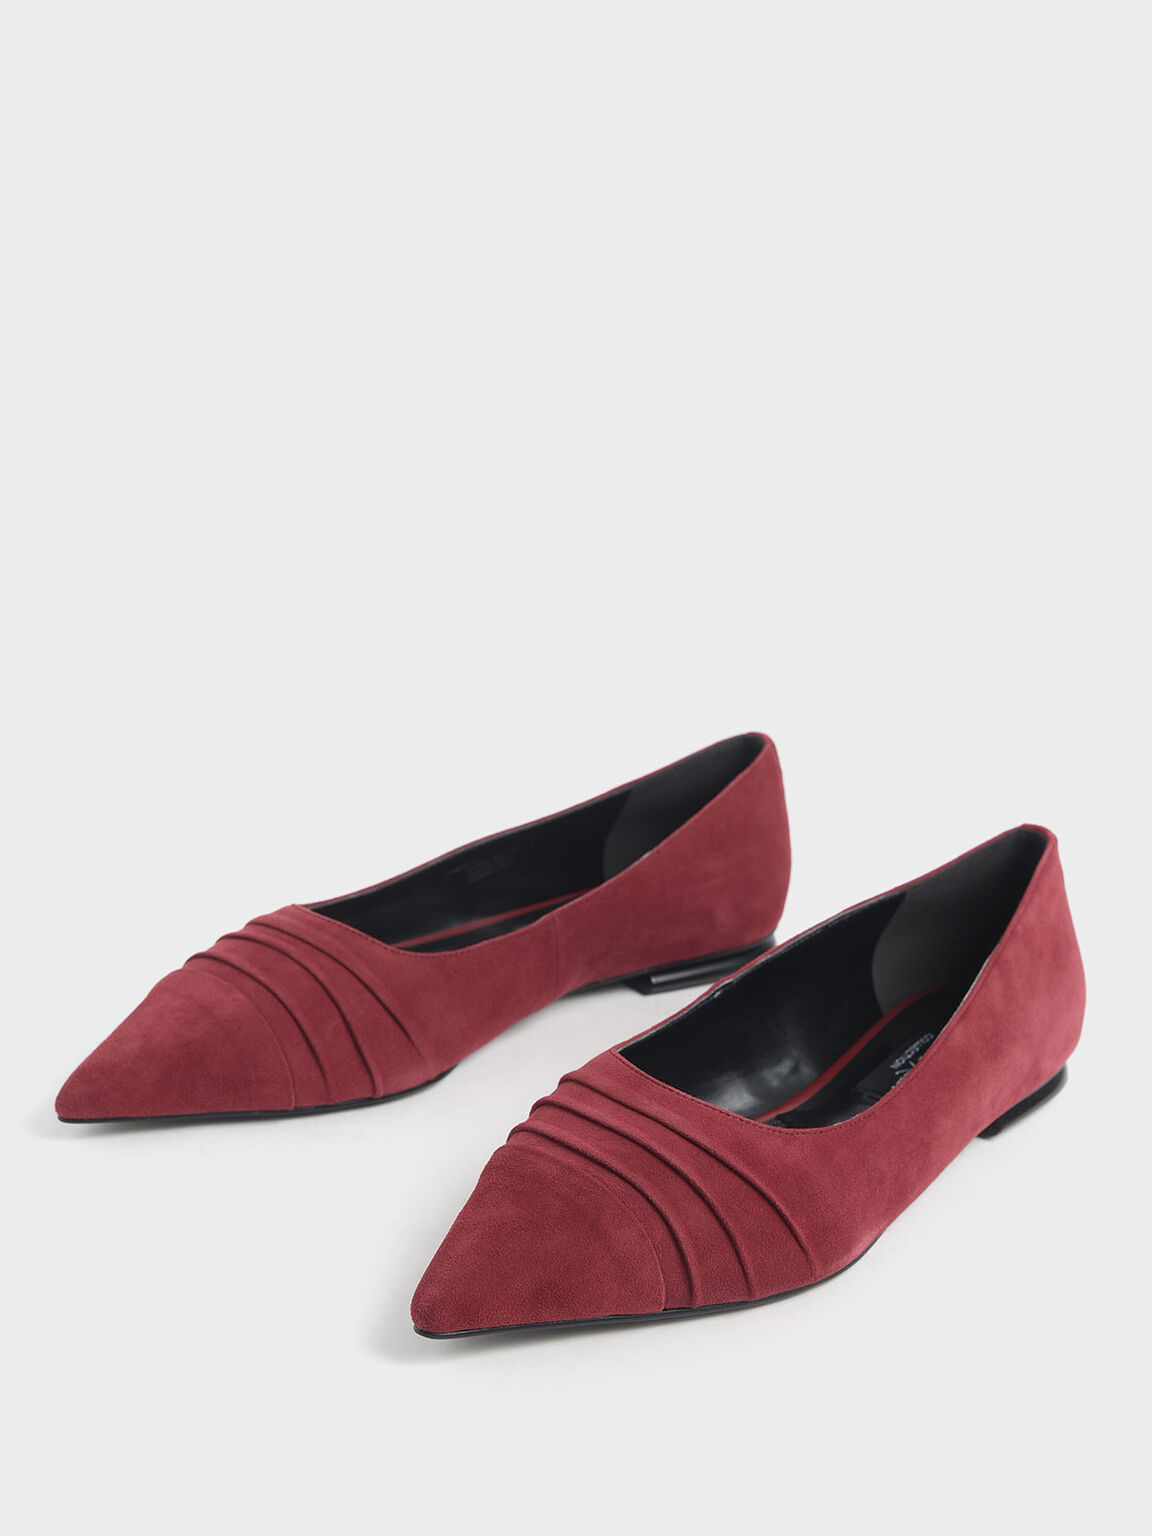 Ruched Ballerina Flats (Kid Suede), Red, hi-res